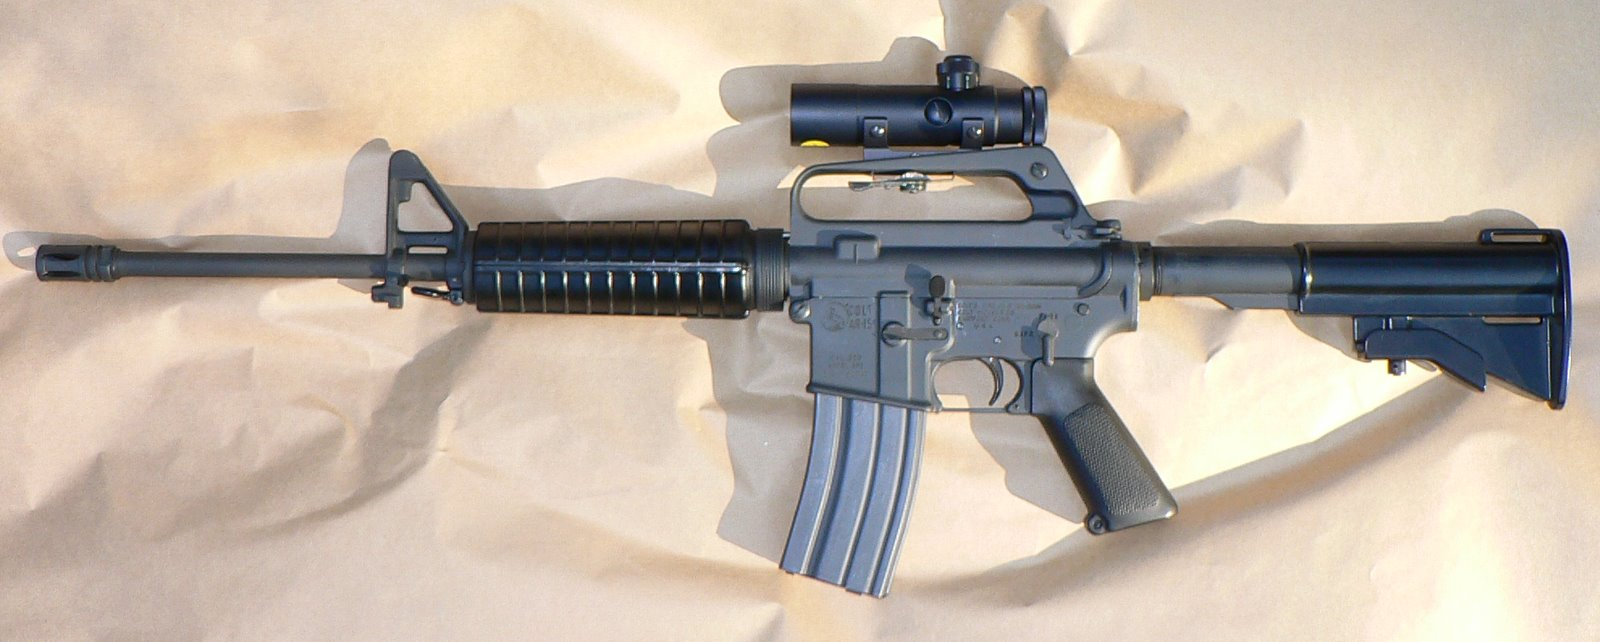 assault weapon wikipediaSemi Automatic Rifle Similar To A Semi Automatic Pistol A Semi #9